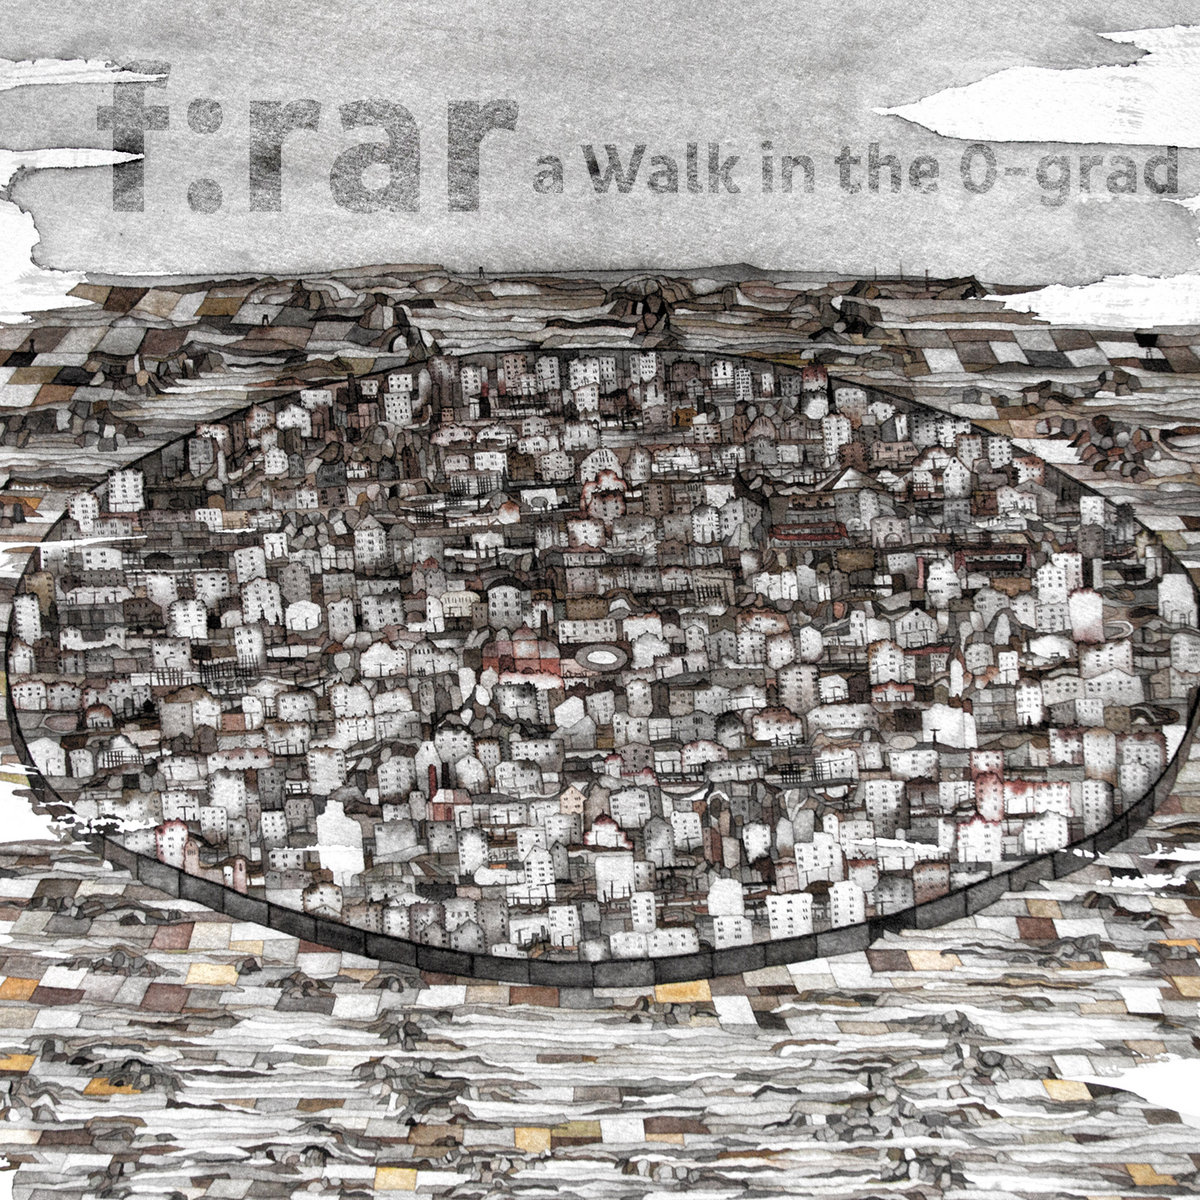 rar – a Walk in the 0​-​grad